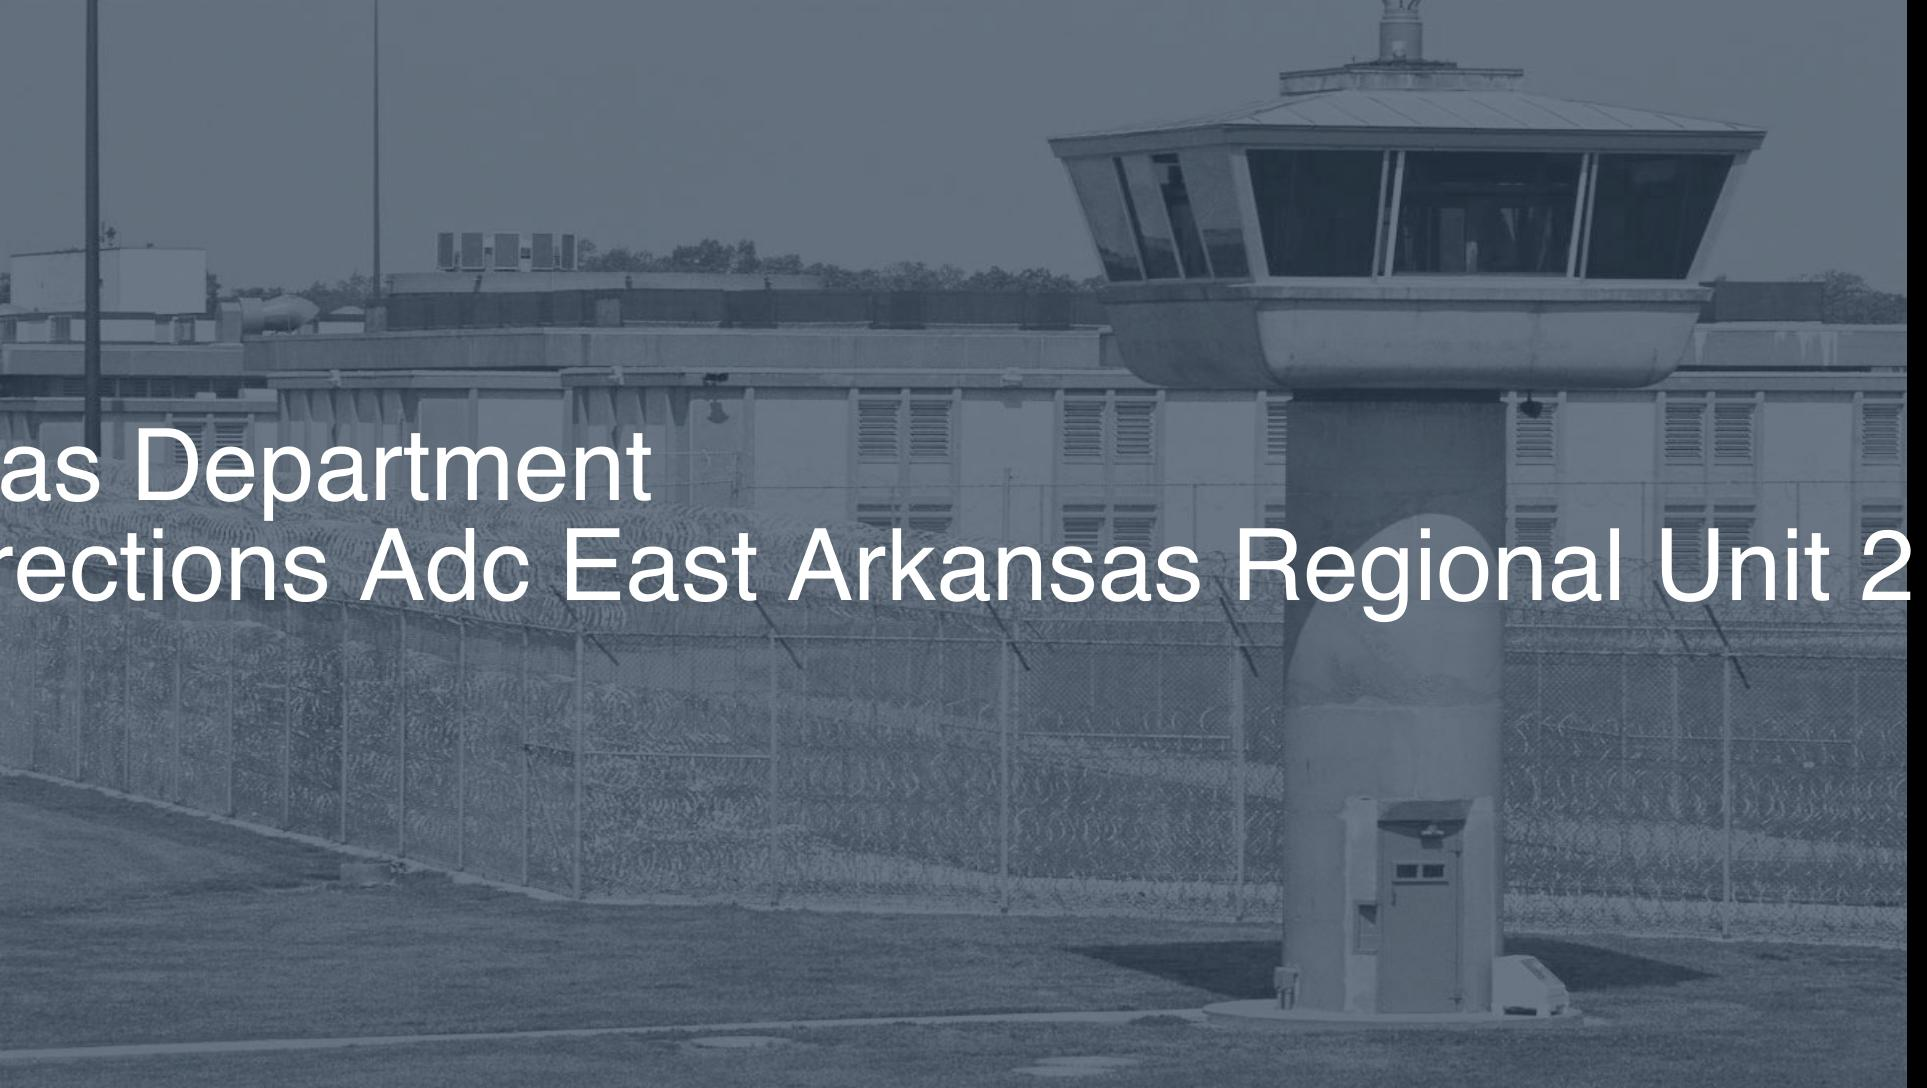 Arkansas Department of Corrections (ADC) - East Arkansas Regional Unit correctional facility picture